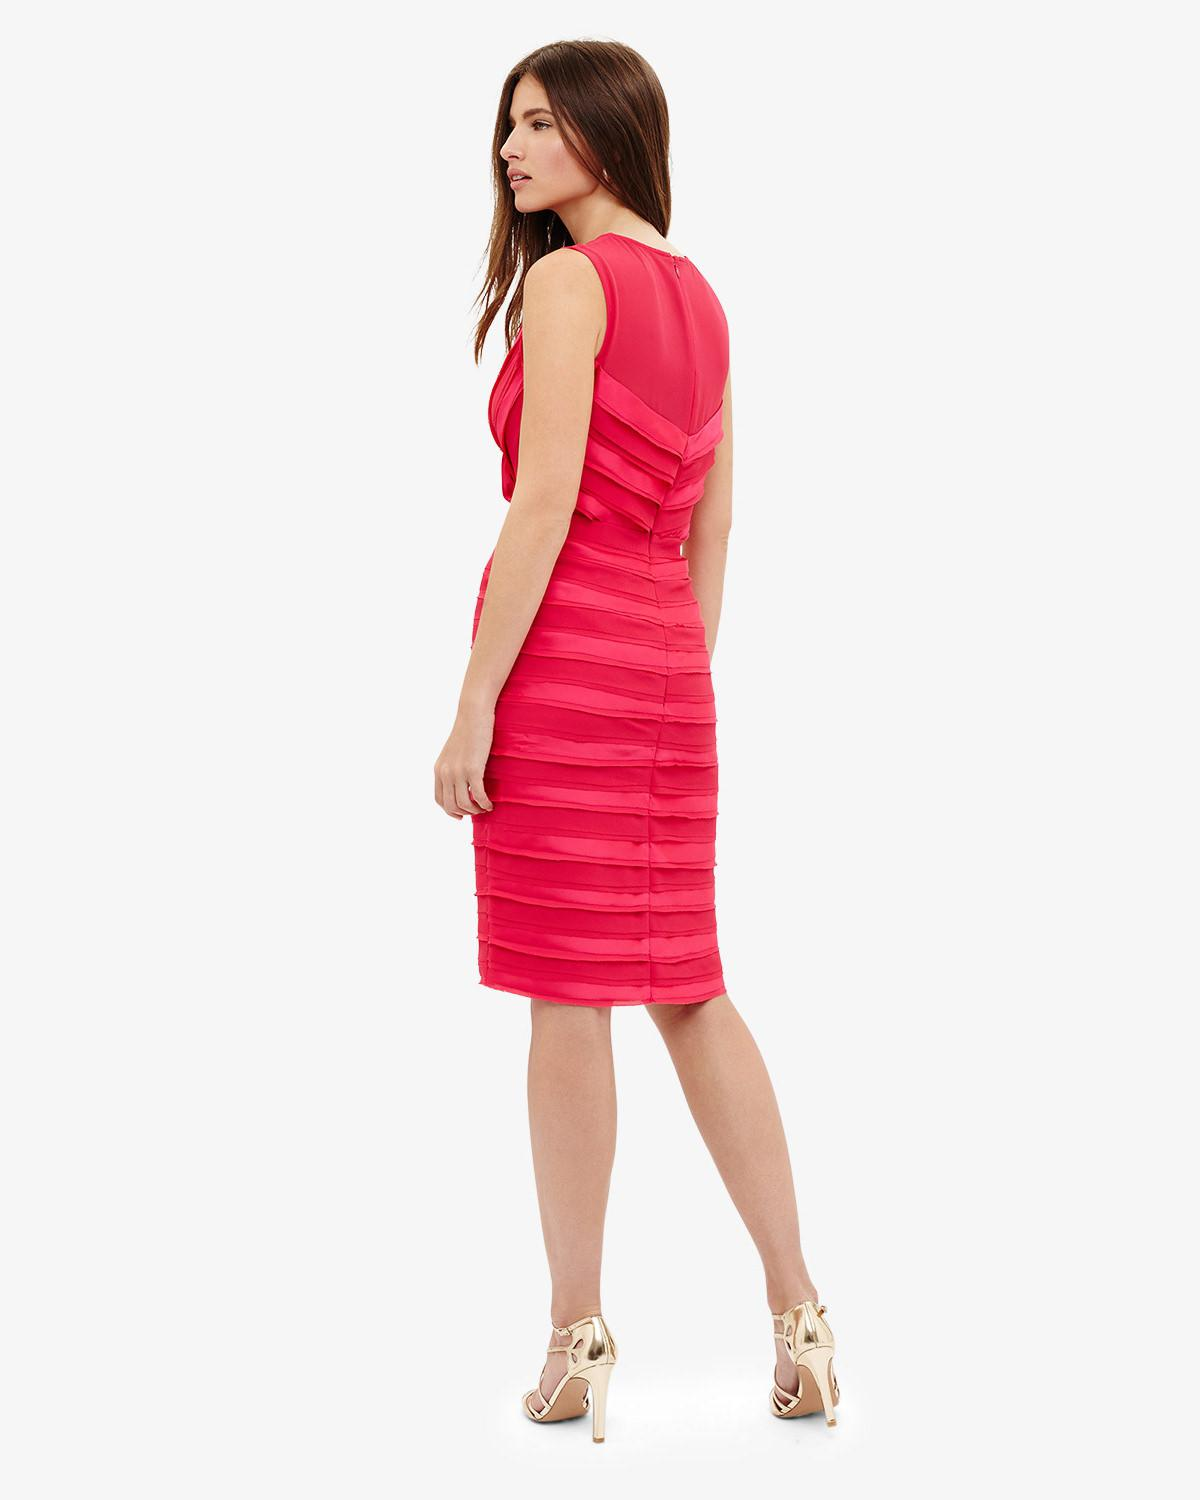 Lyst - Phase Eight (d)sadie Layered Dress in Pink 5529961ea